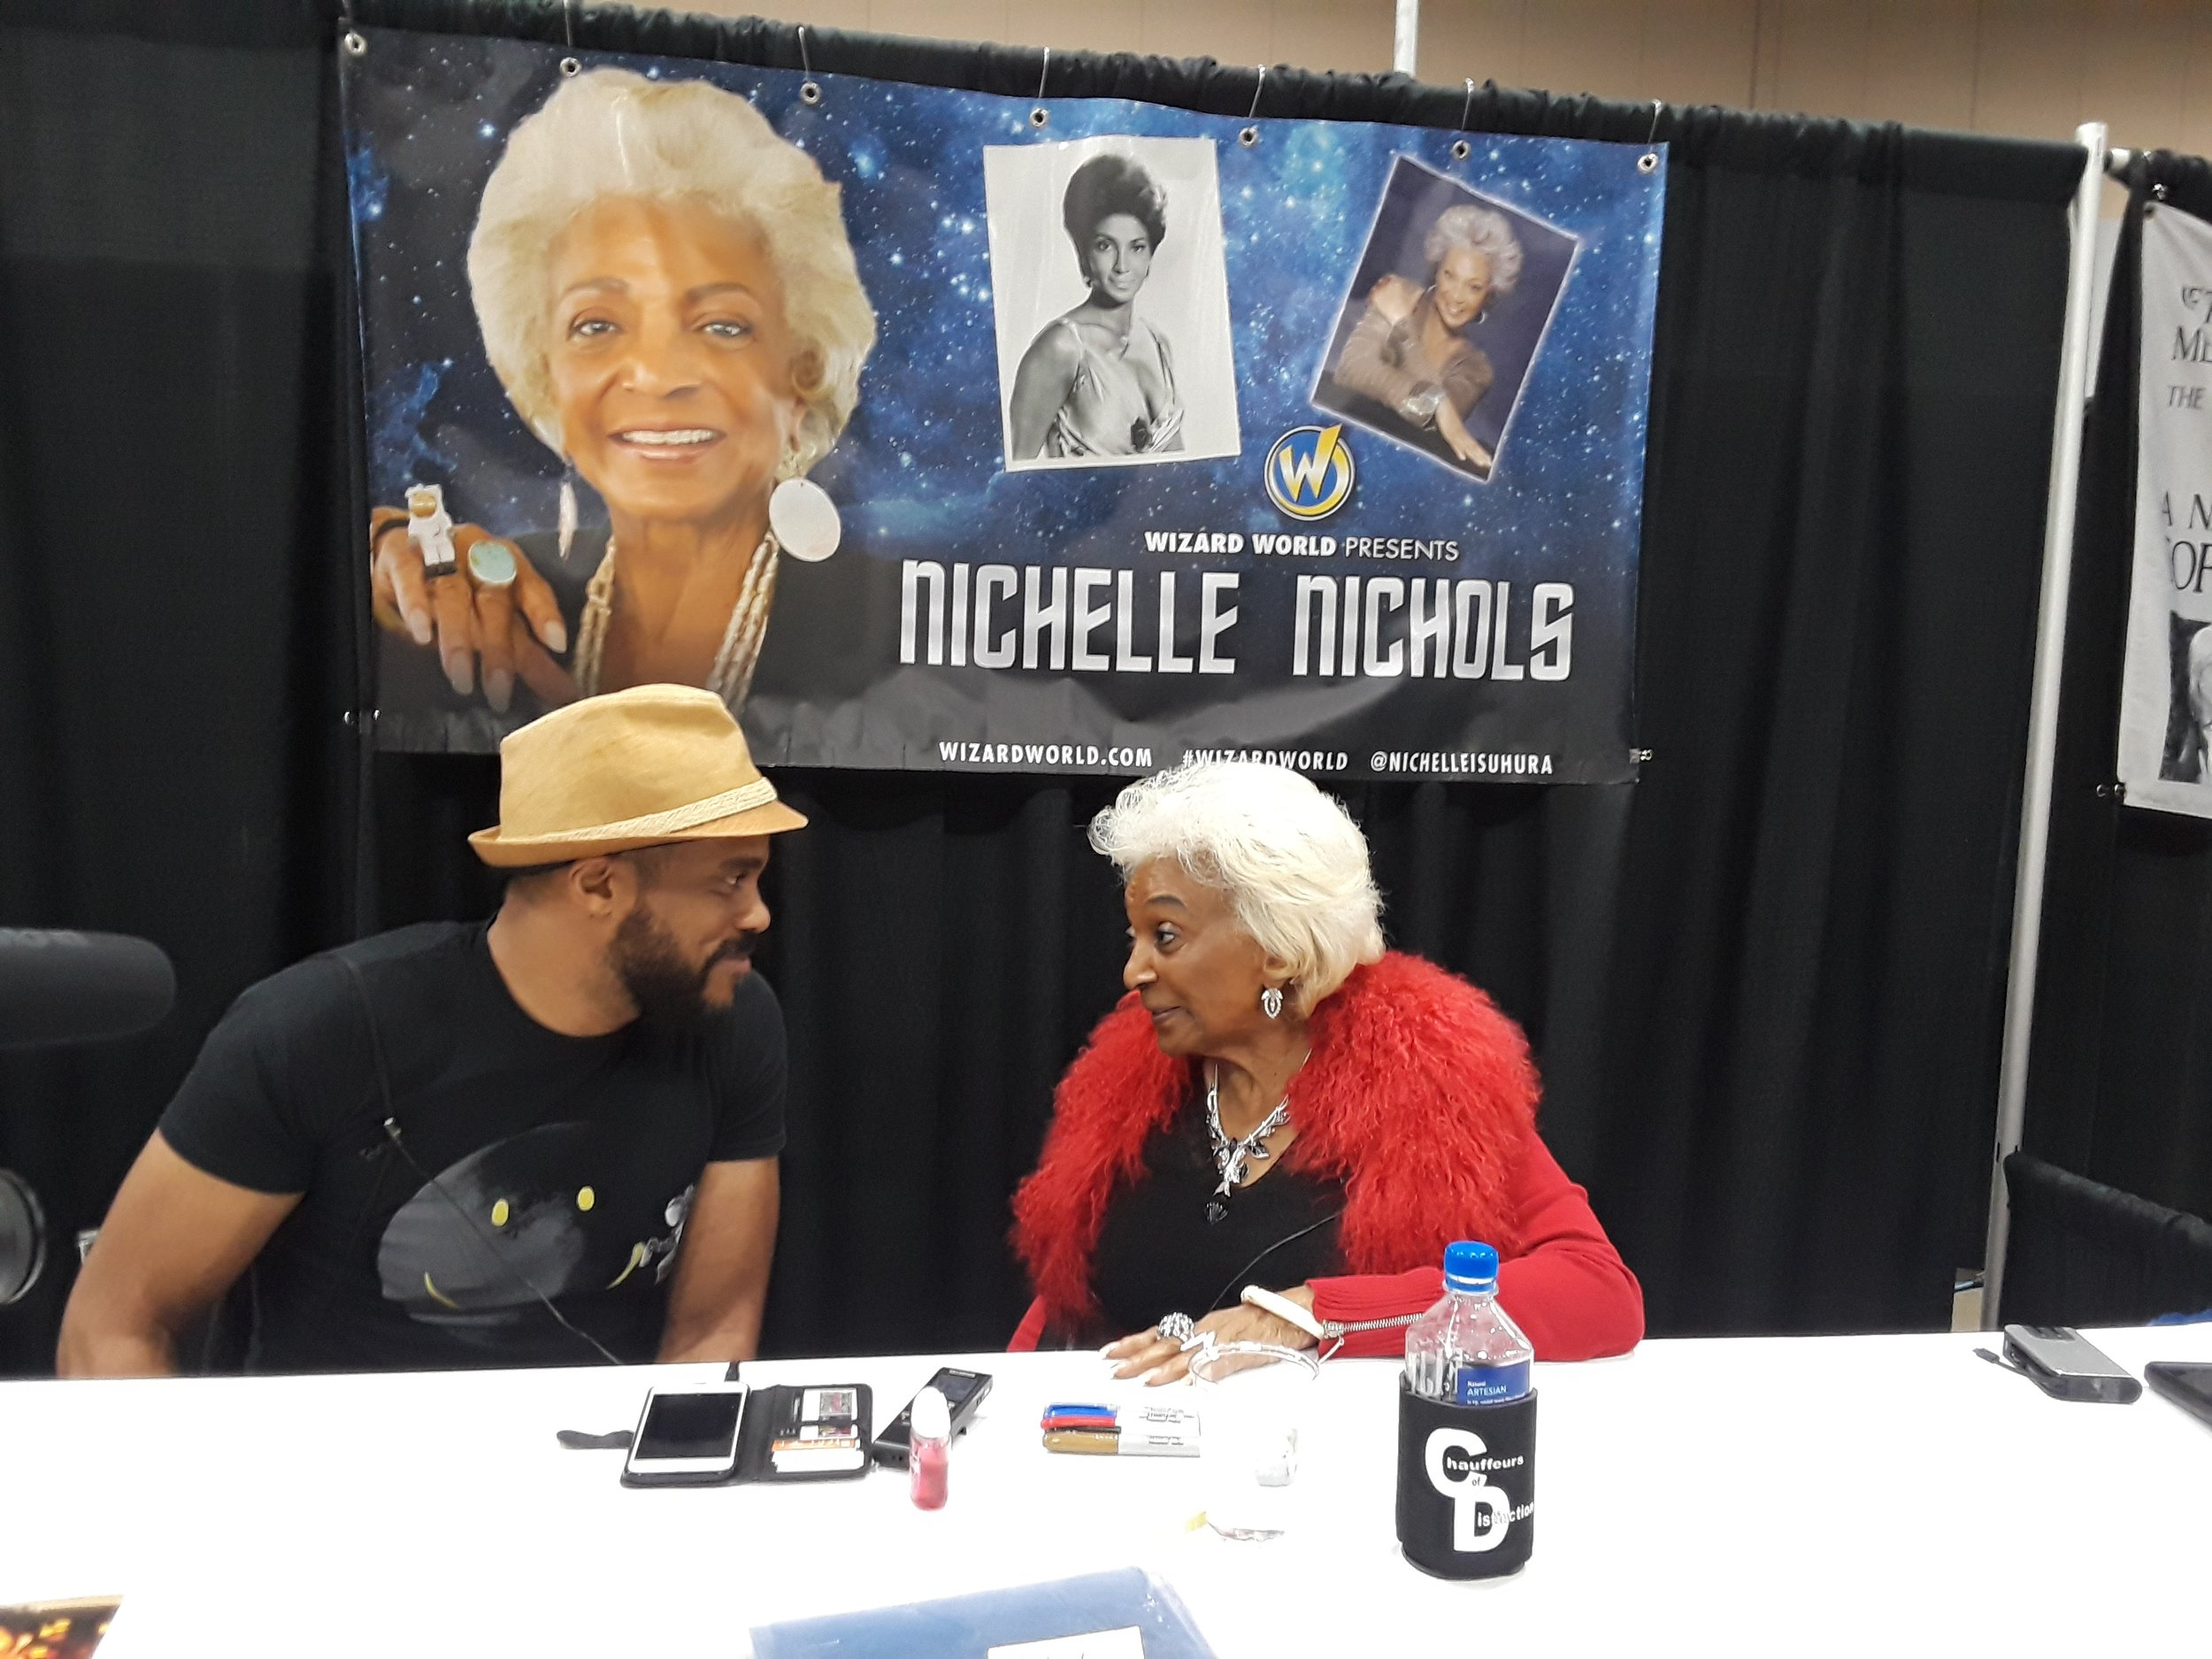 R. Alan Brooks  talking with  Nichelle Nichols  at Wizard World Des Moines 2018.